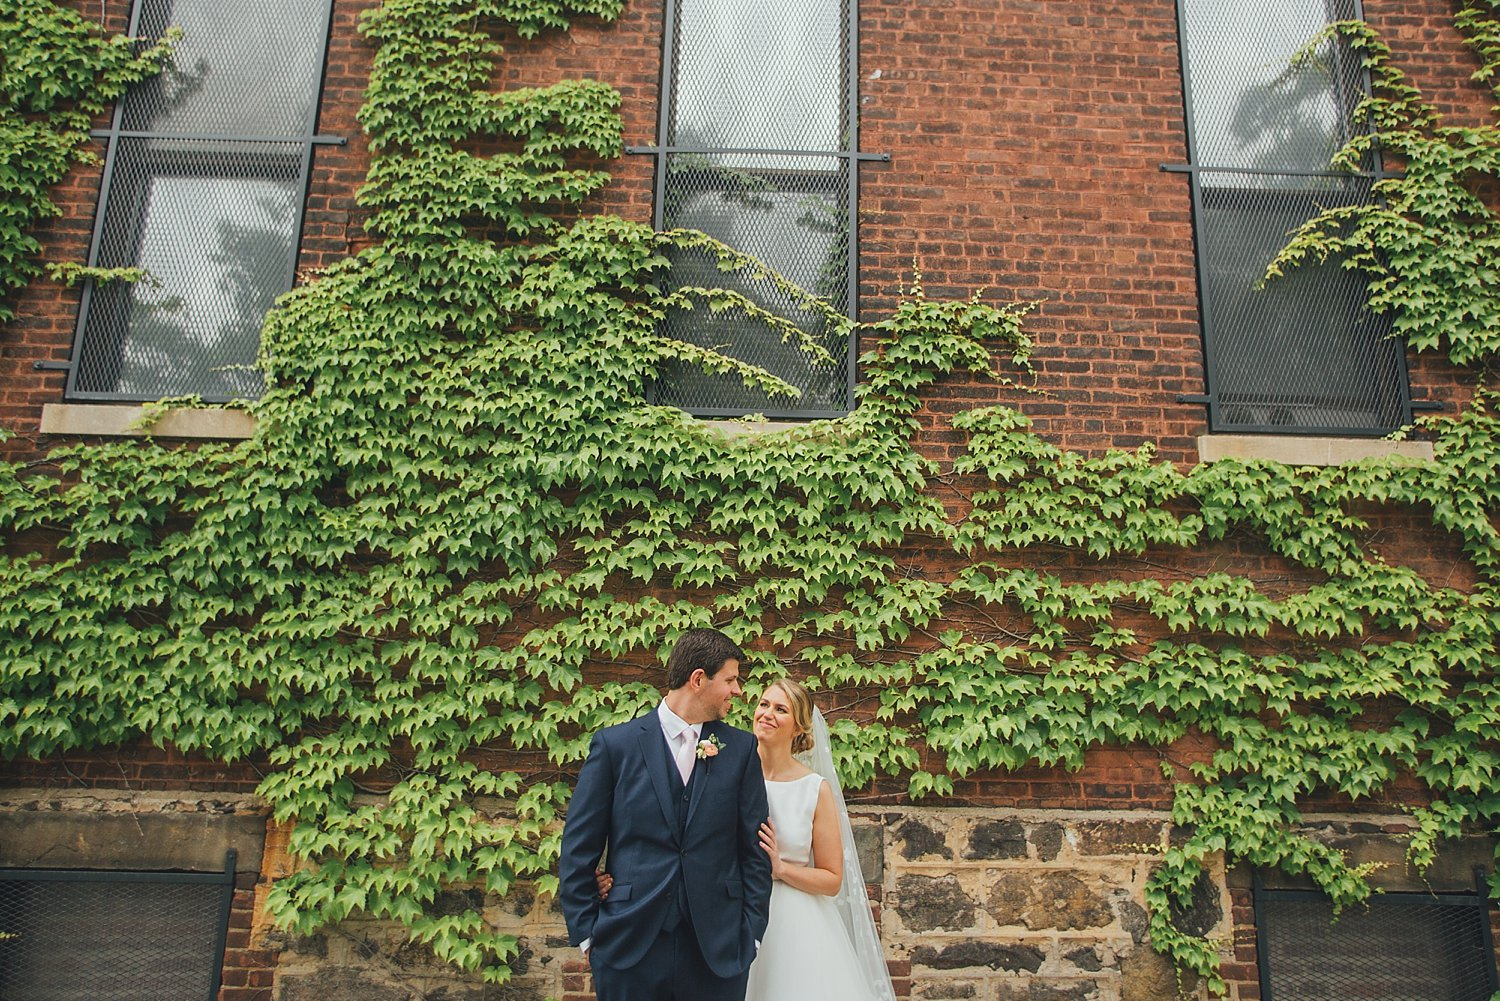 nyc-wedding-photography-nj-tri-state-cinematography-intothestory-by-moo-jae_0345.jpg